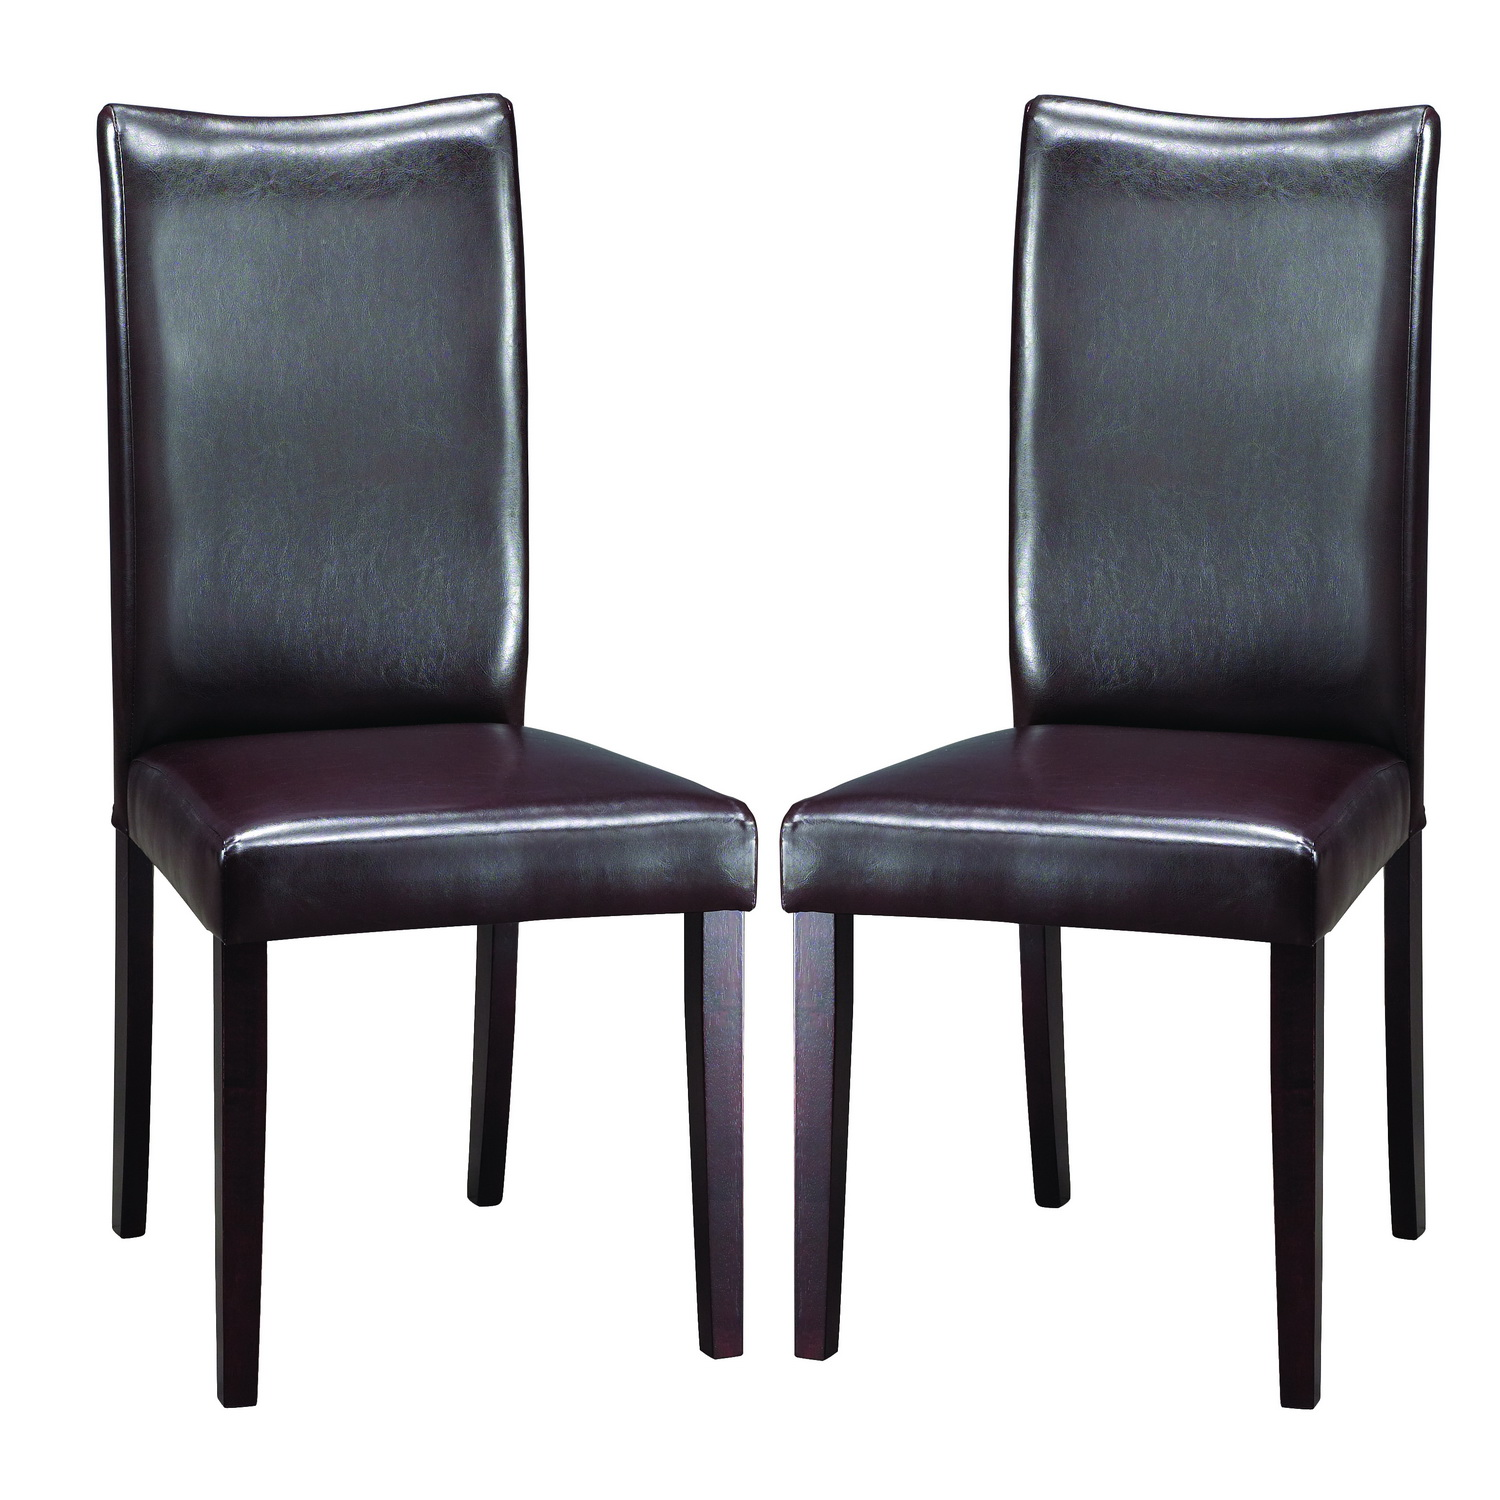 Blue Leather Dining Chairs Beautiful Light Blue Leather Dining Chairs Chair Pads